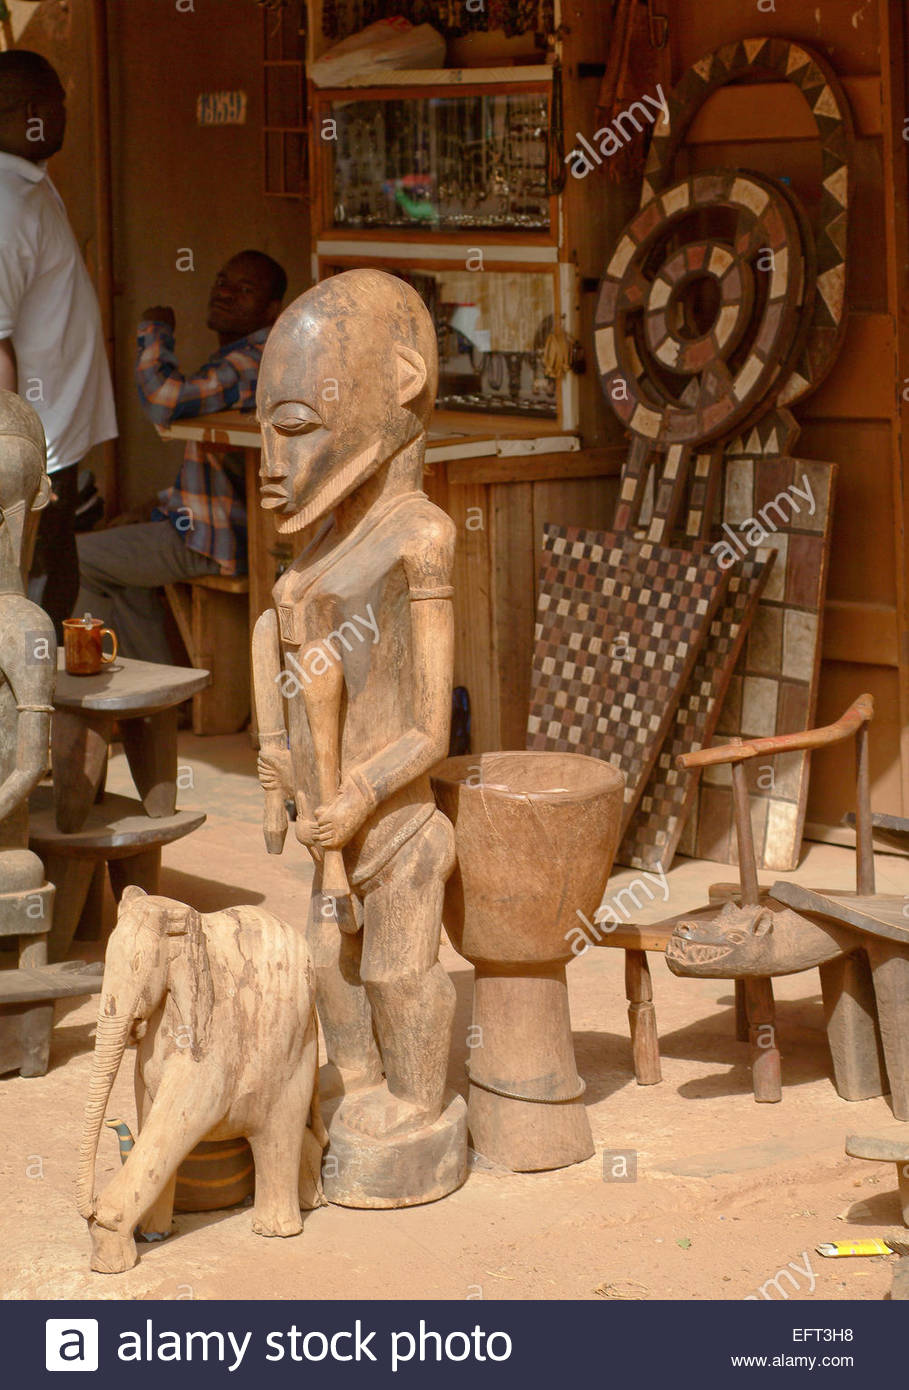 Wooden carvings wood carving carved craft arts and crafts burkina